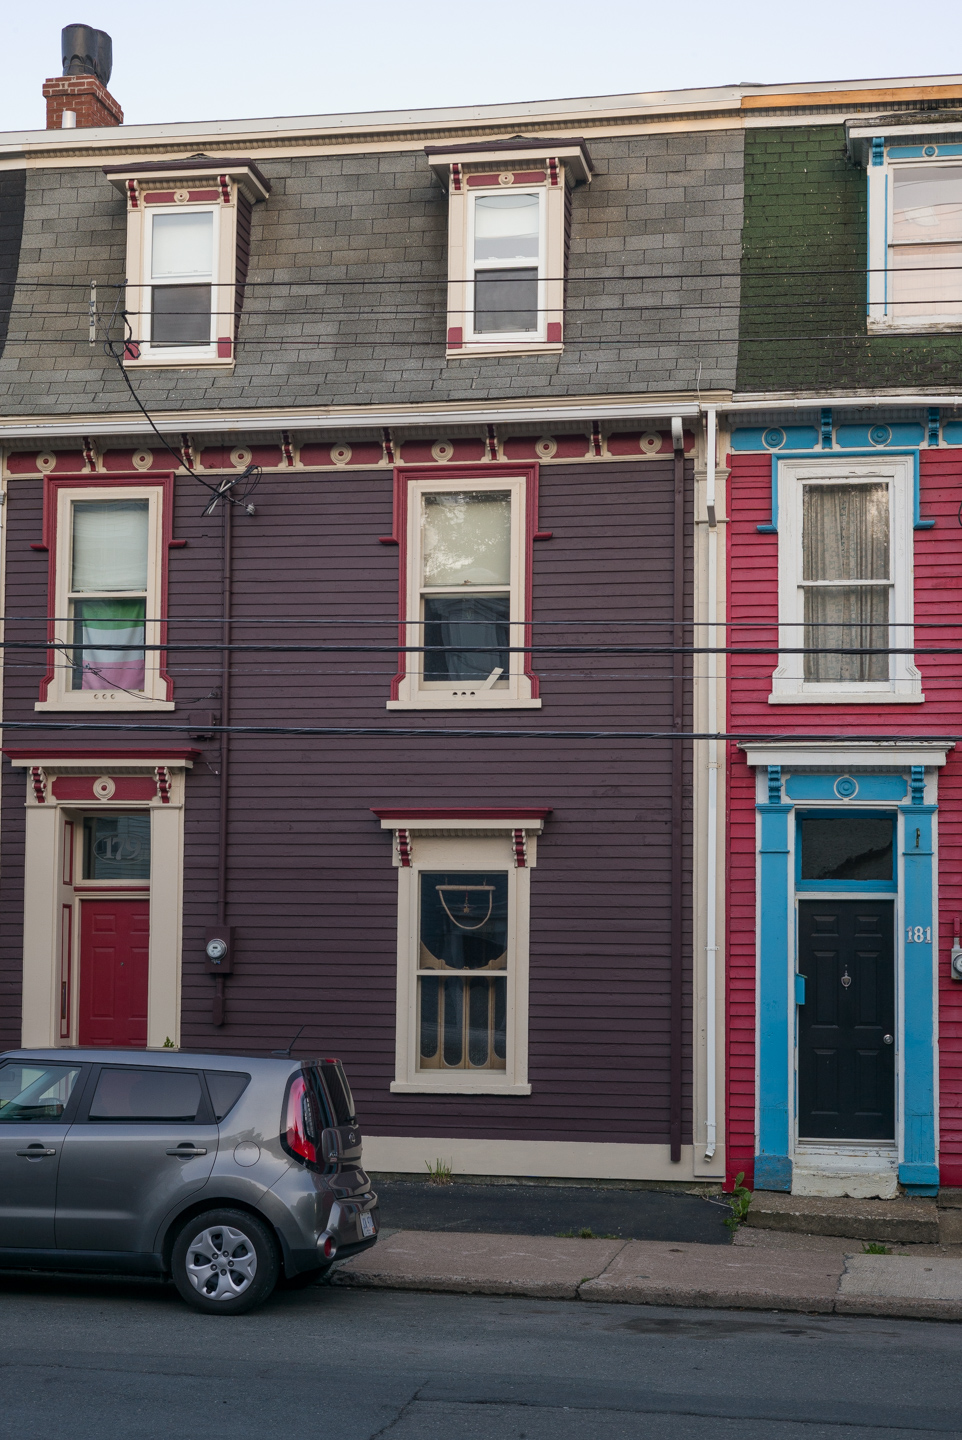 The Pink, White, and Green. St. John's, Newfoundland 2016